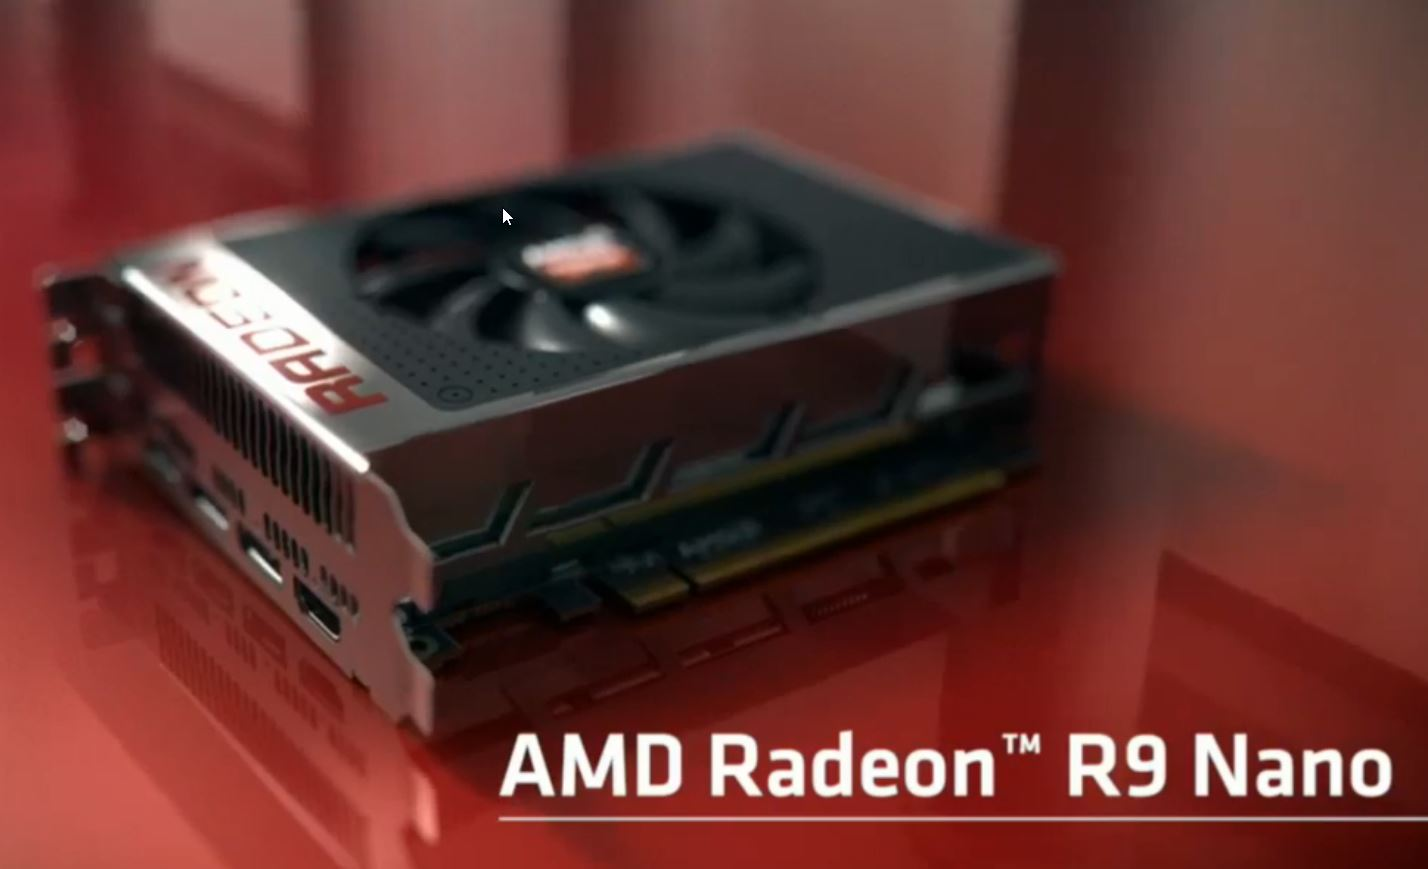 AMD Radeon R9 Nano Graphics Card